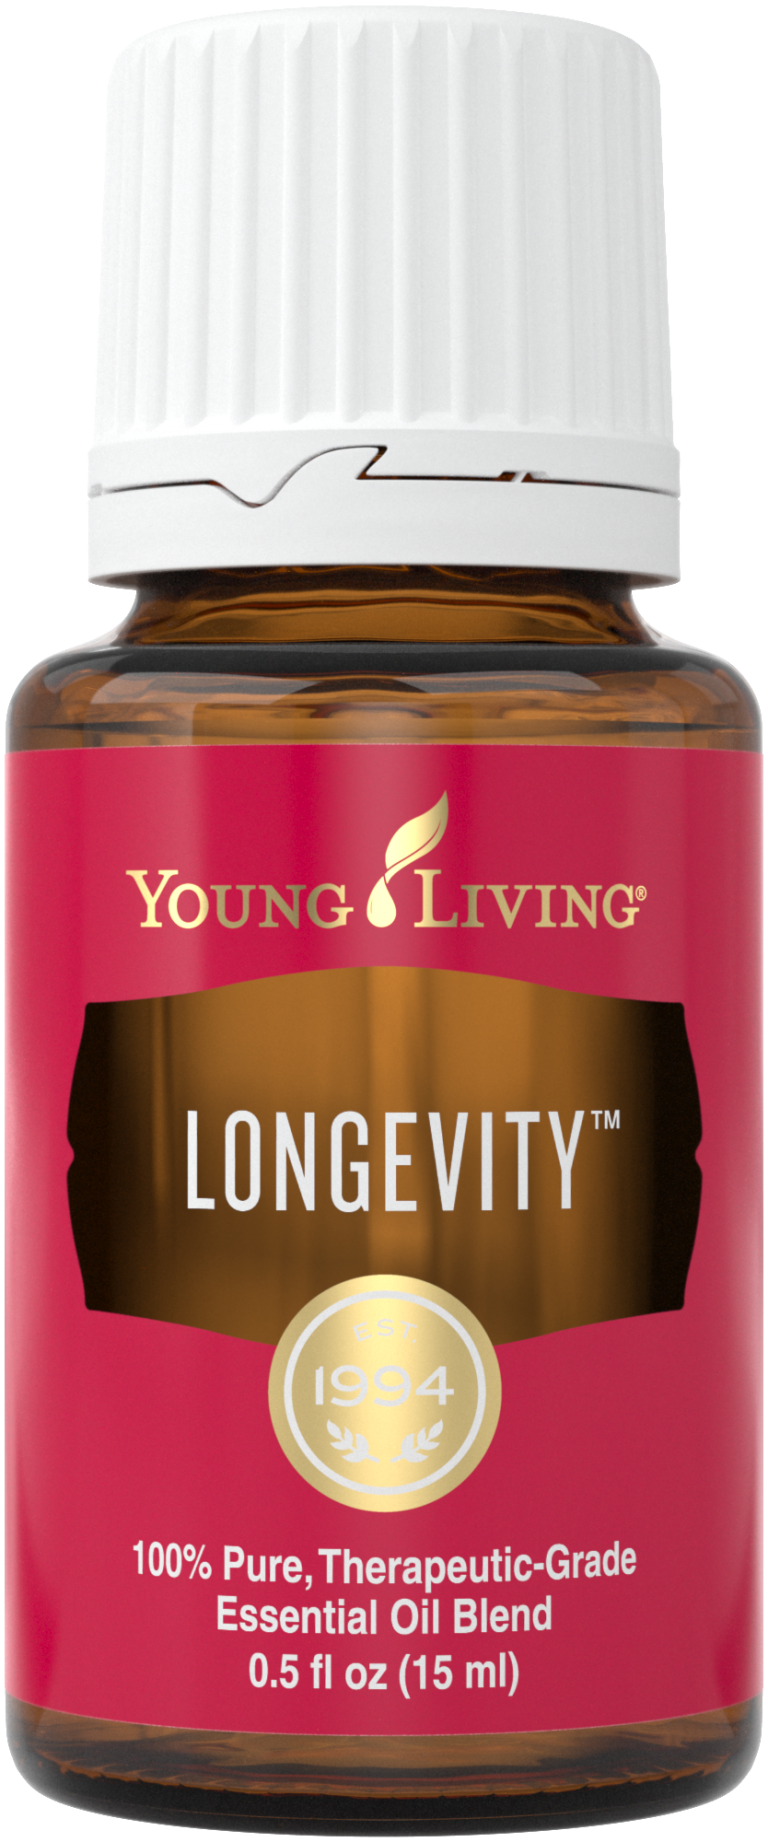 longevity_15ml_silo_us_2016_23900378203_o